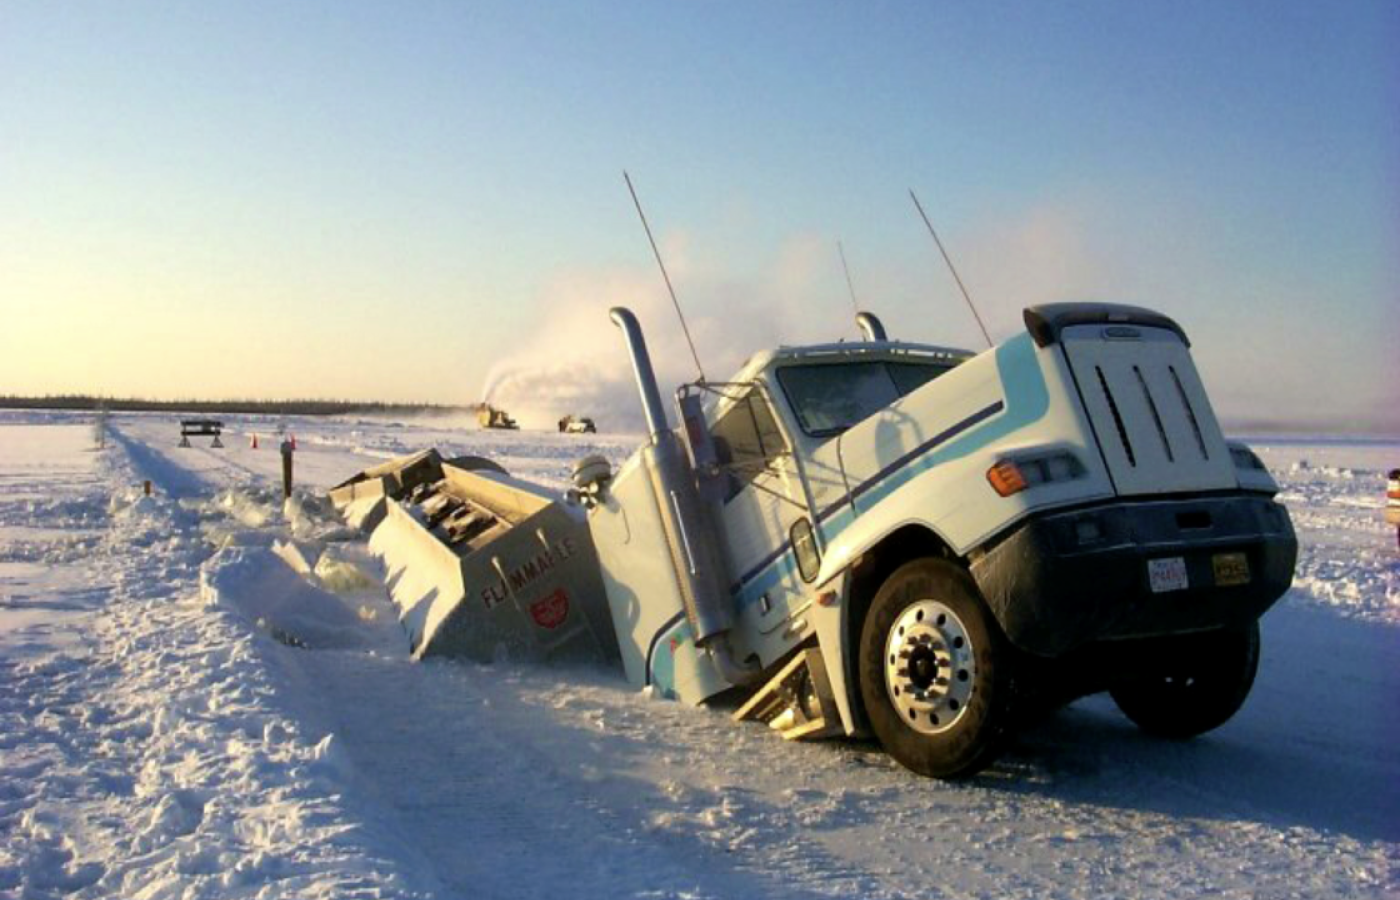 A truck broken through the ice road with only the cab protruding through the ice